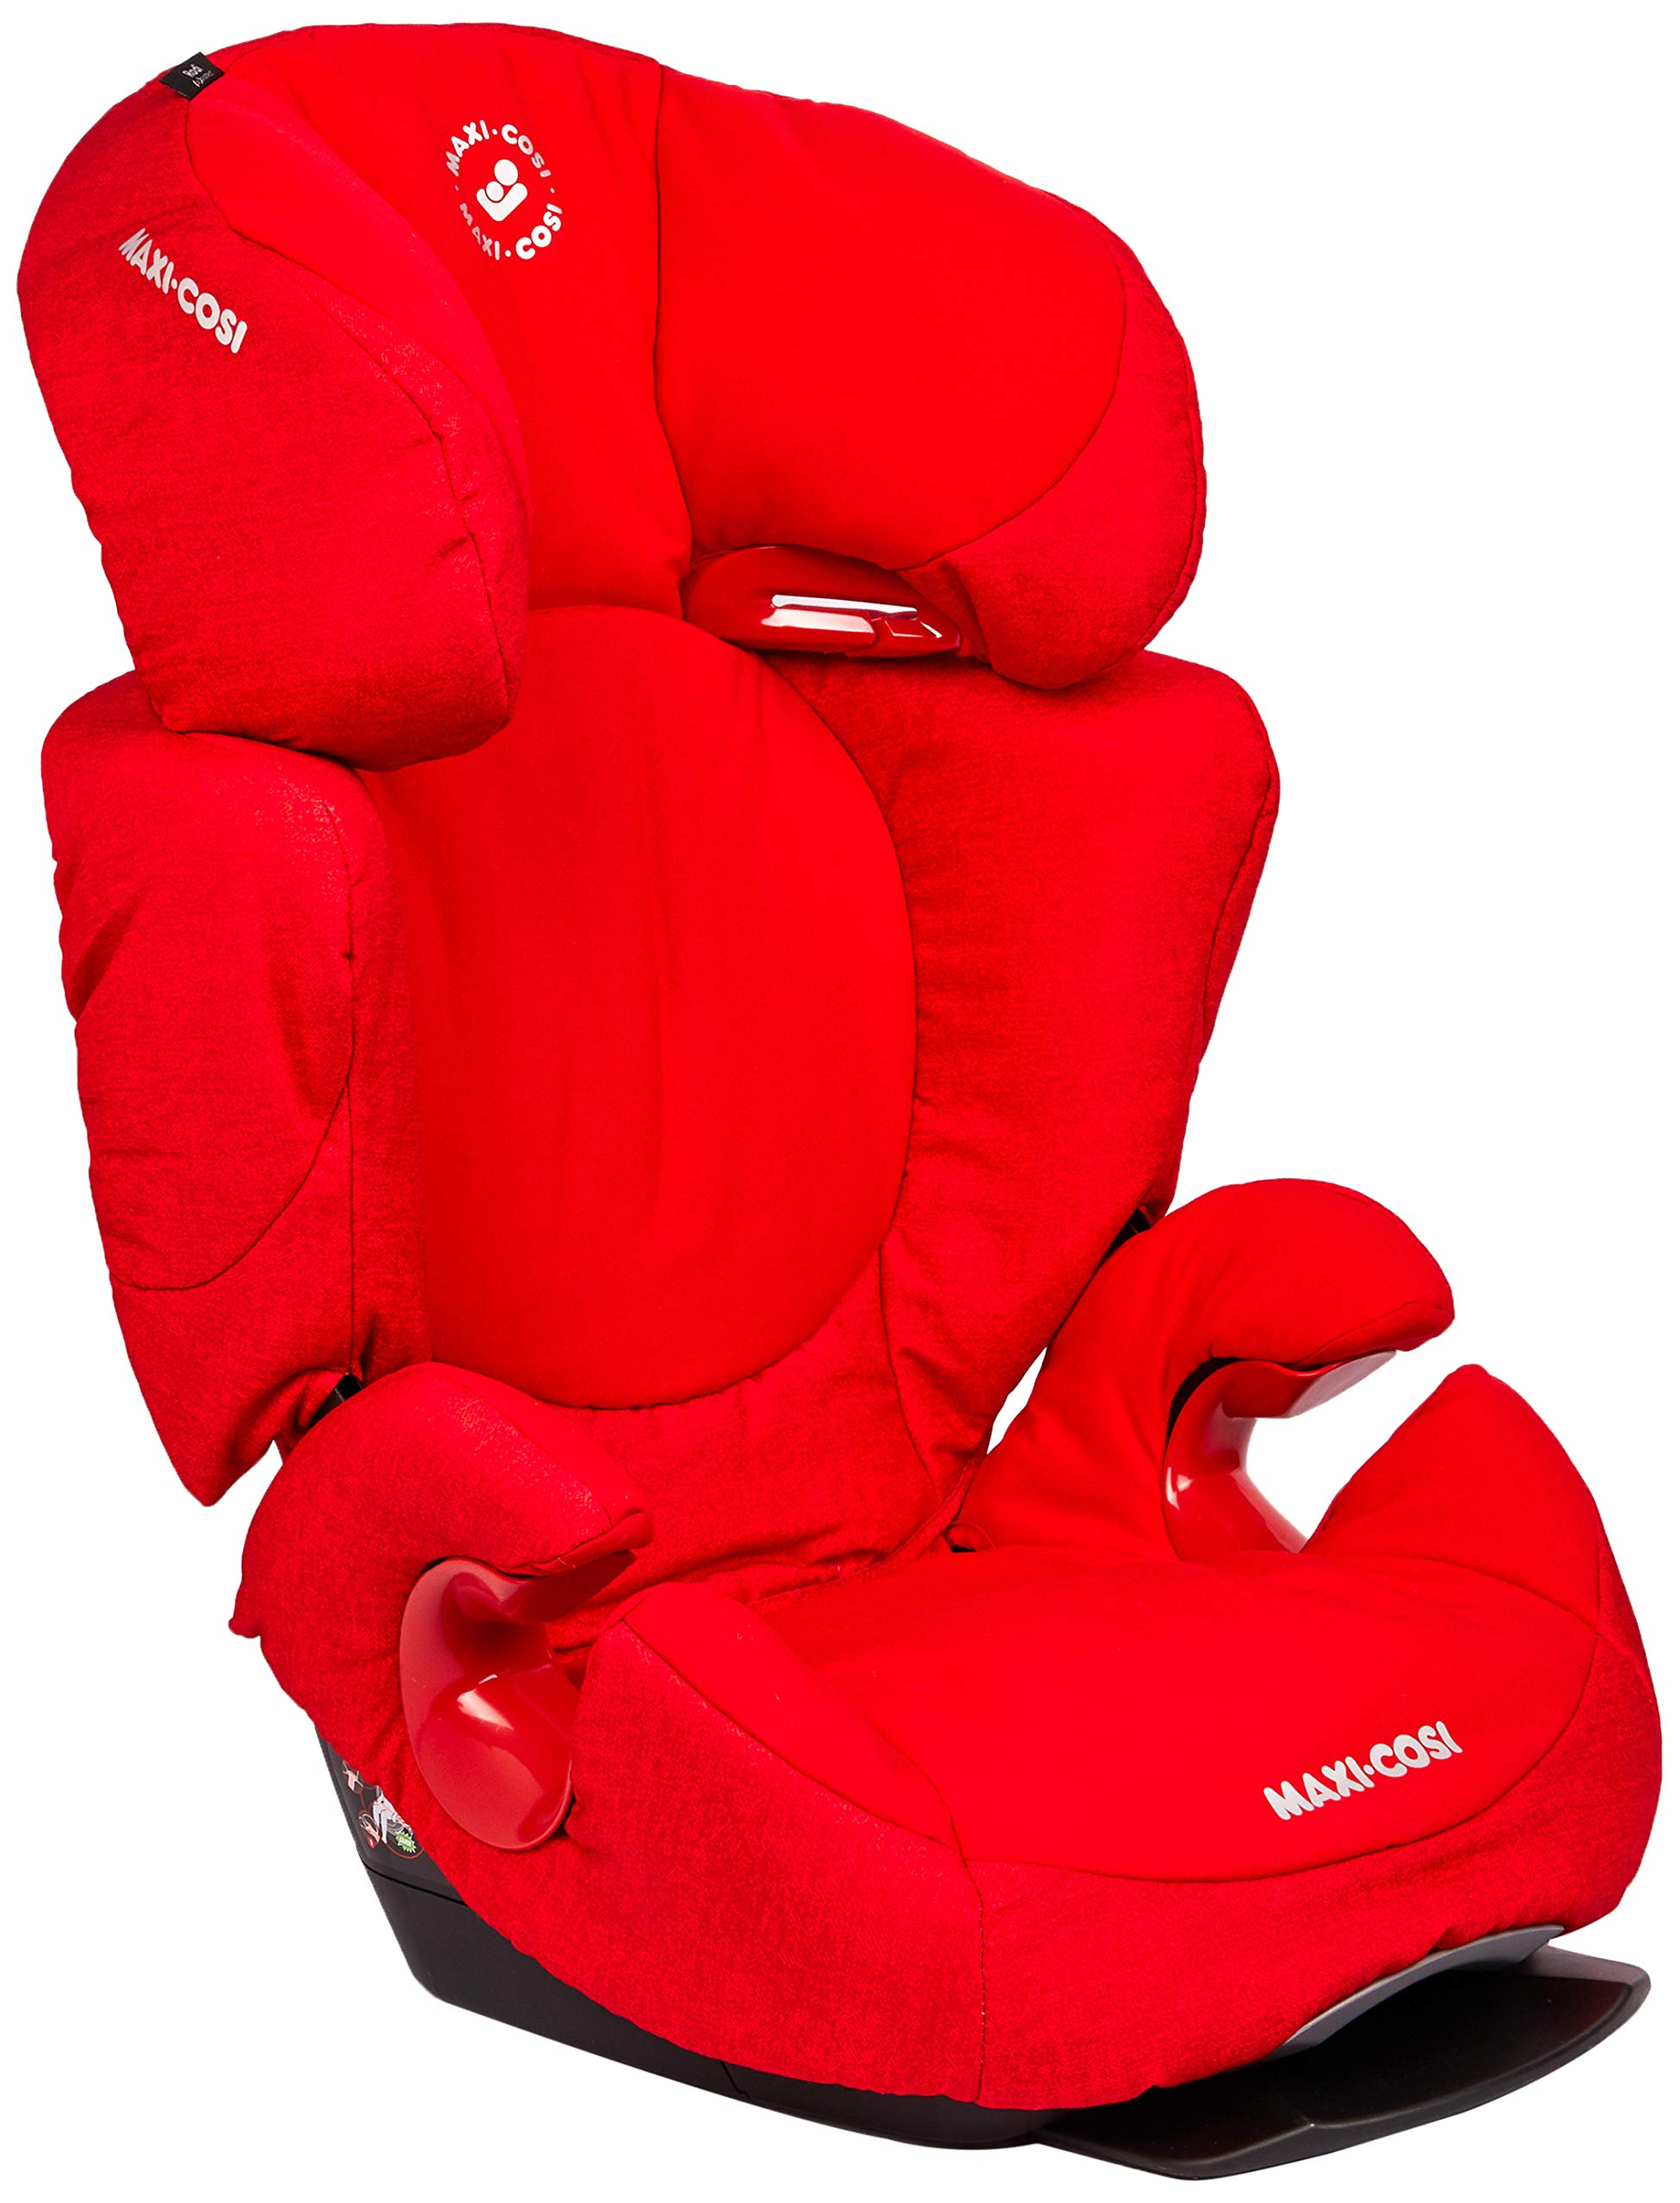 Maxi-Cosi Rodi AirProtect Child Car Seat, Lightweight Highback Booster, 3.5-12 Years, 15-36 kg, Nomad Red Maxi-Cosi Child car seat, suitable from 3.5 to 12 years (15 - 36kg) Easily install this safe car seat with a 3-point seat belt and attach the anchorage point in the head rest through your cars head rest Patented air protect technology in headrest reduces the risk of head and neck injuries up to 20 percent 3